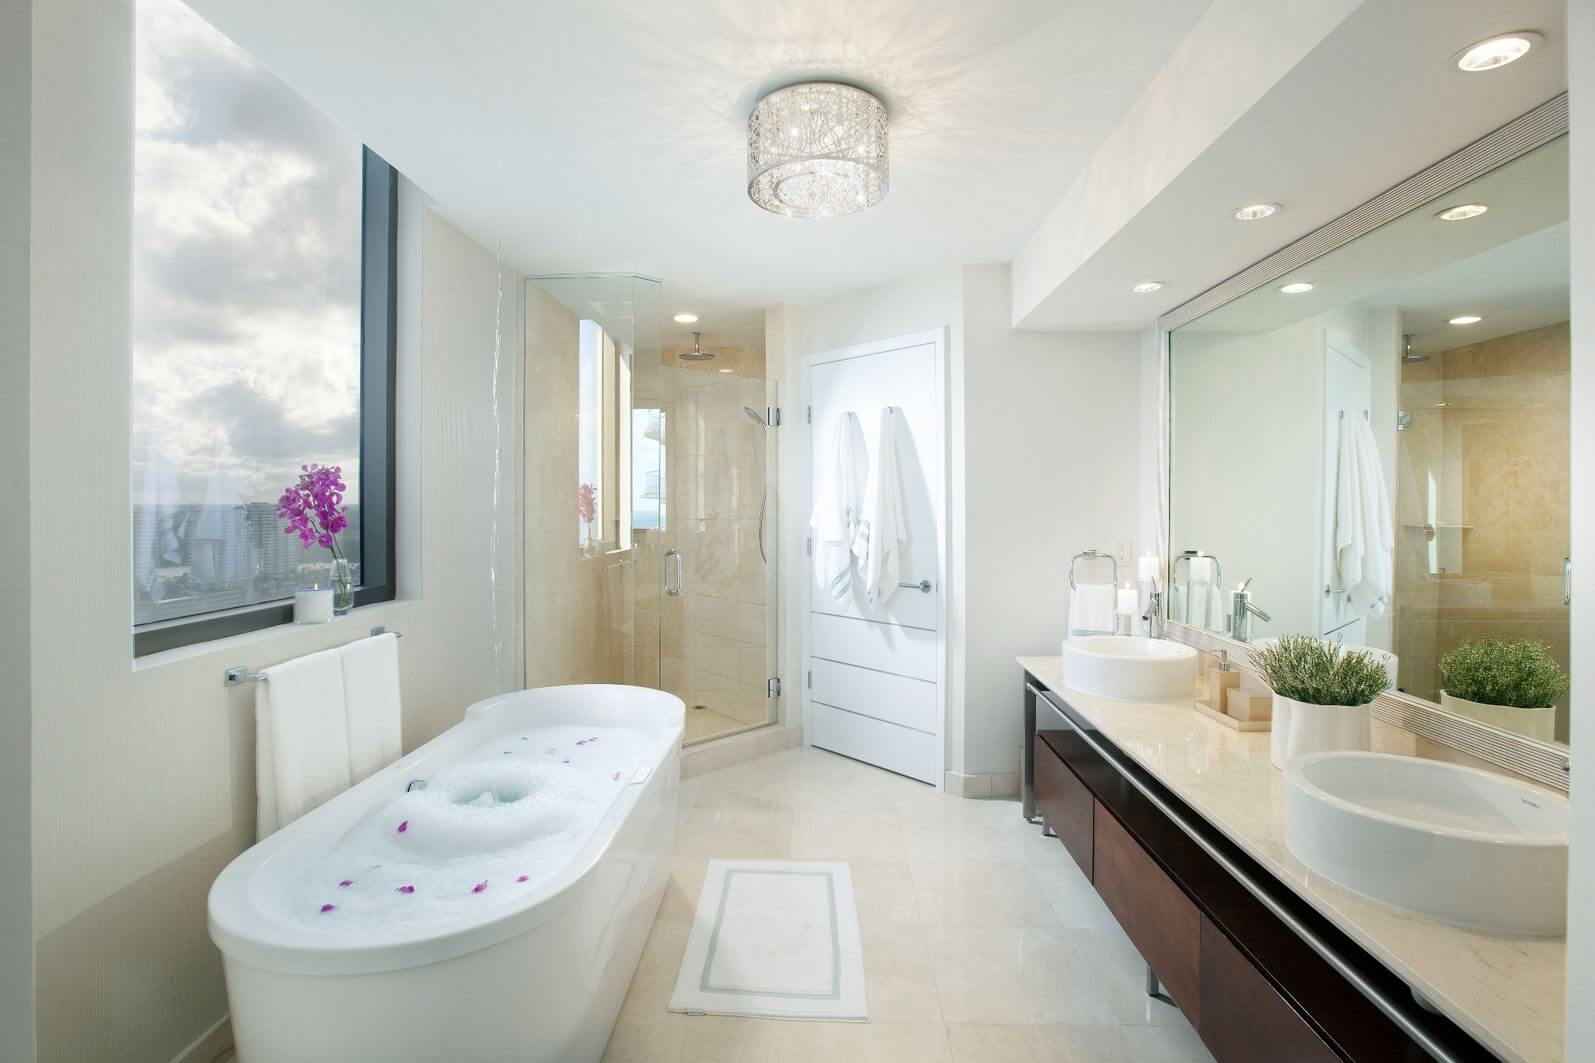 40 luxurious master bathrooms most with incredible bathtubs for Luxury bathroom vanity lighting